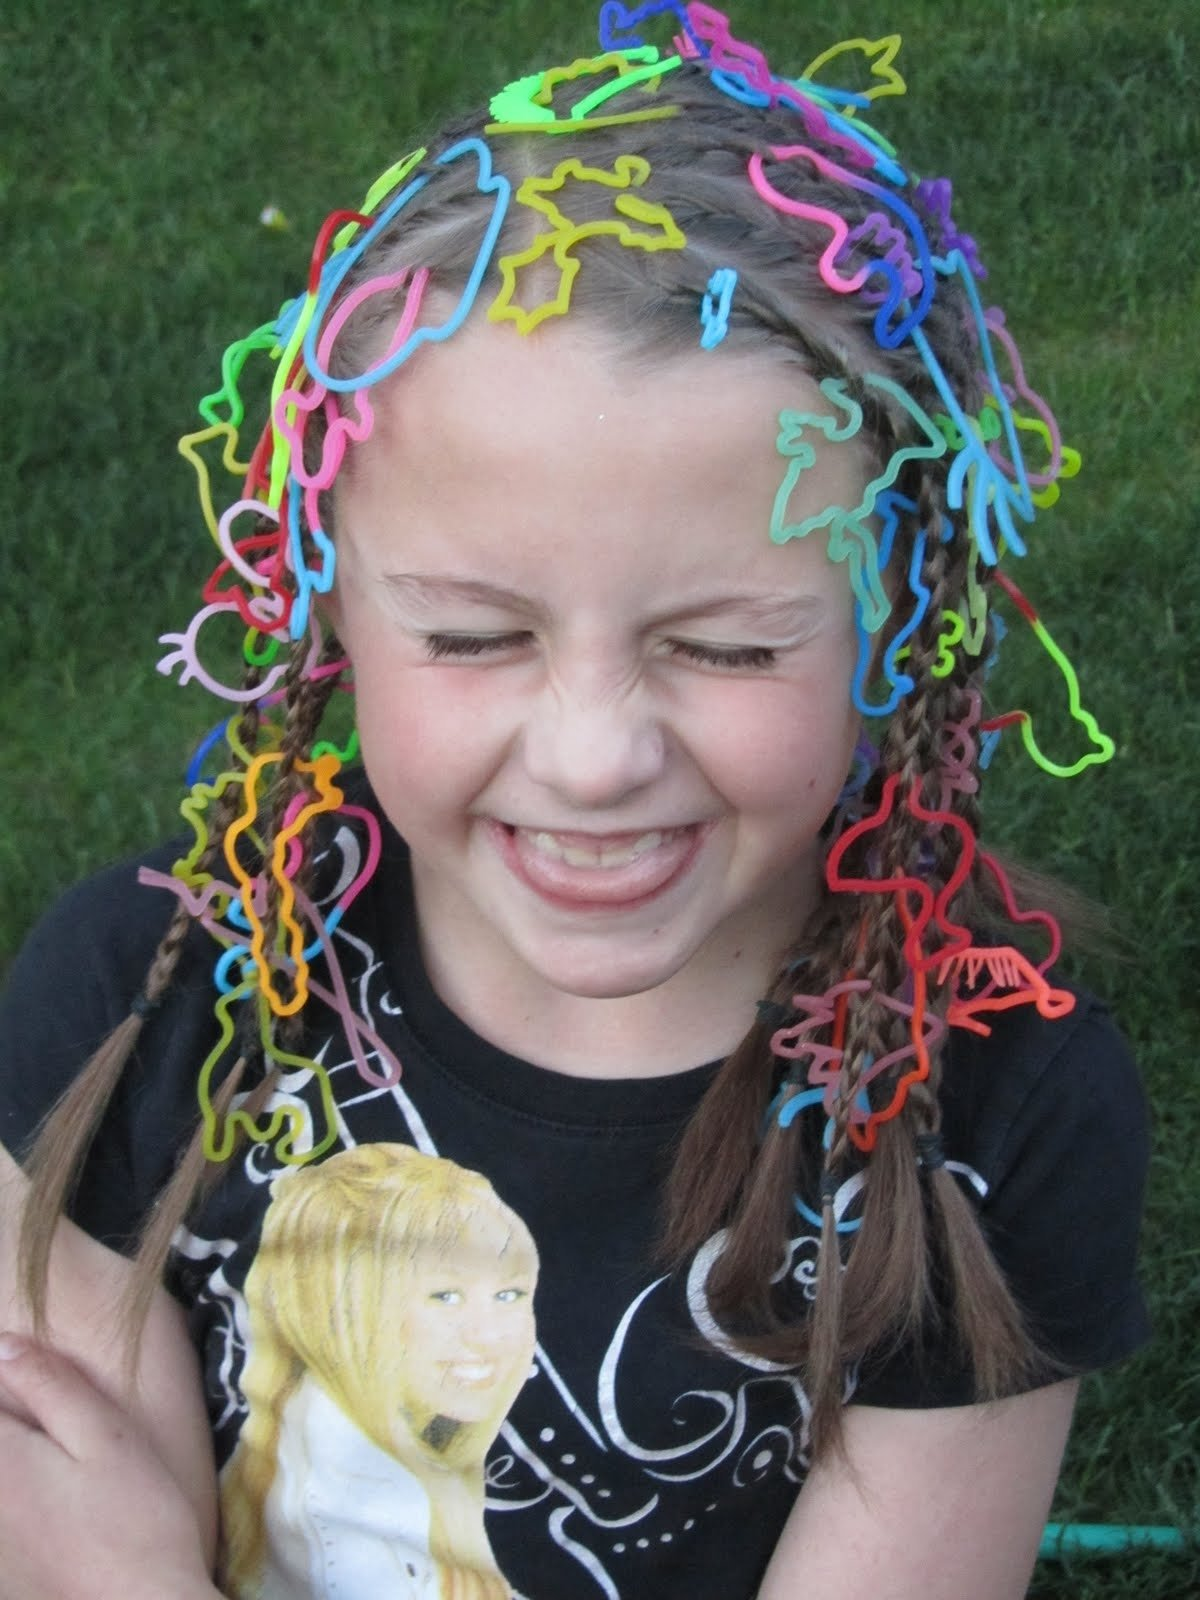 10 Unique Crazy Hair Ideas For Kids top 10 picture of crazy hairstyles for kids floyd donaldson journal